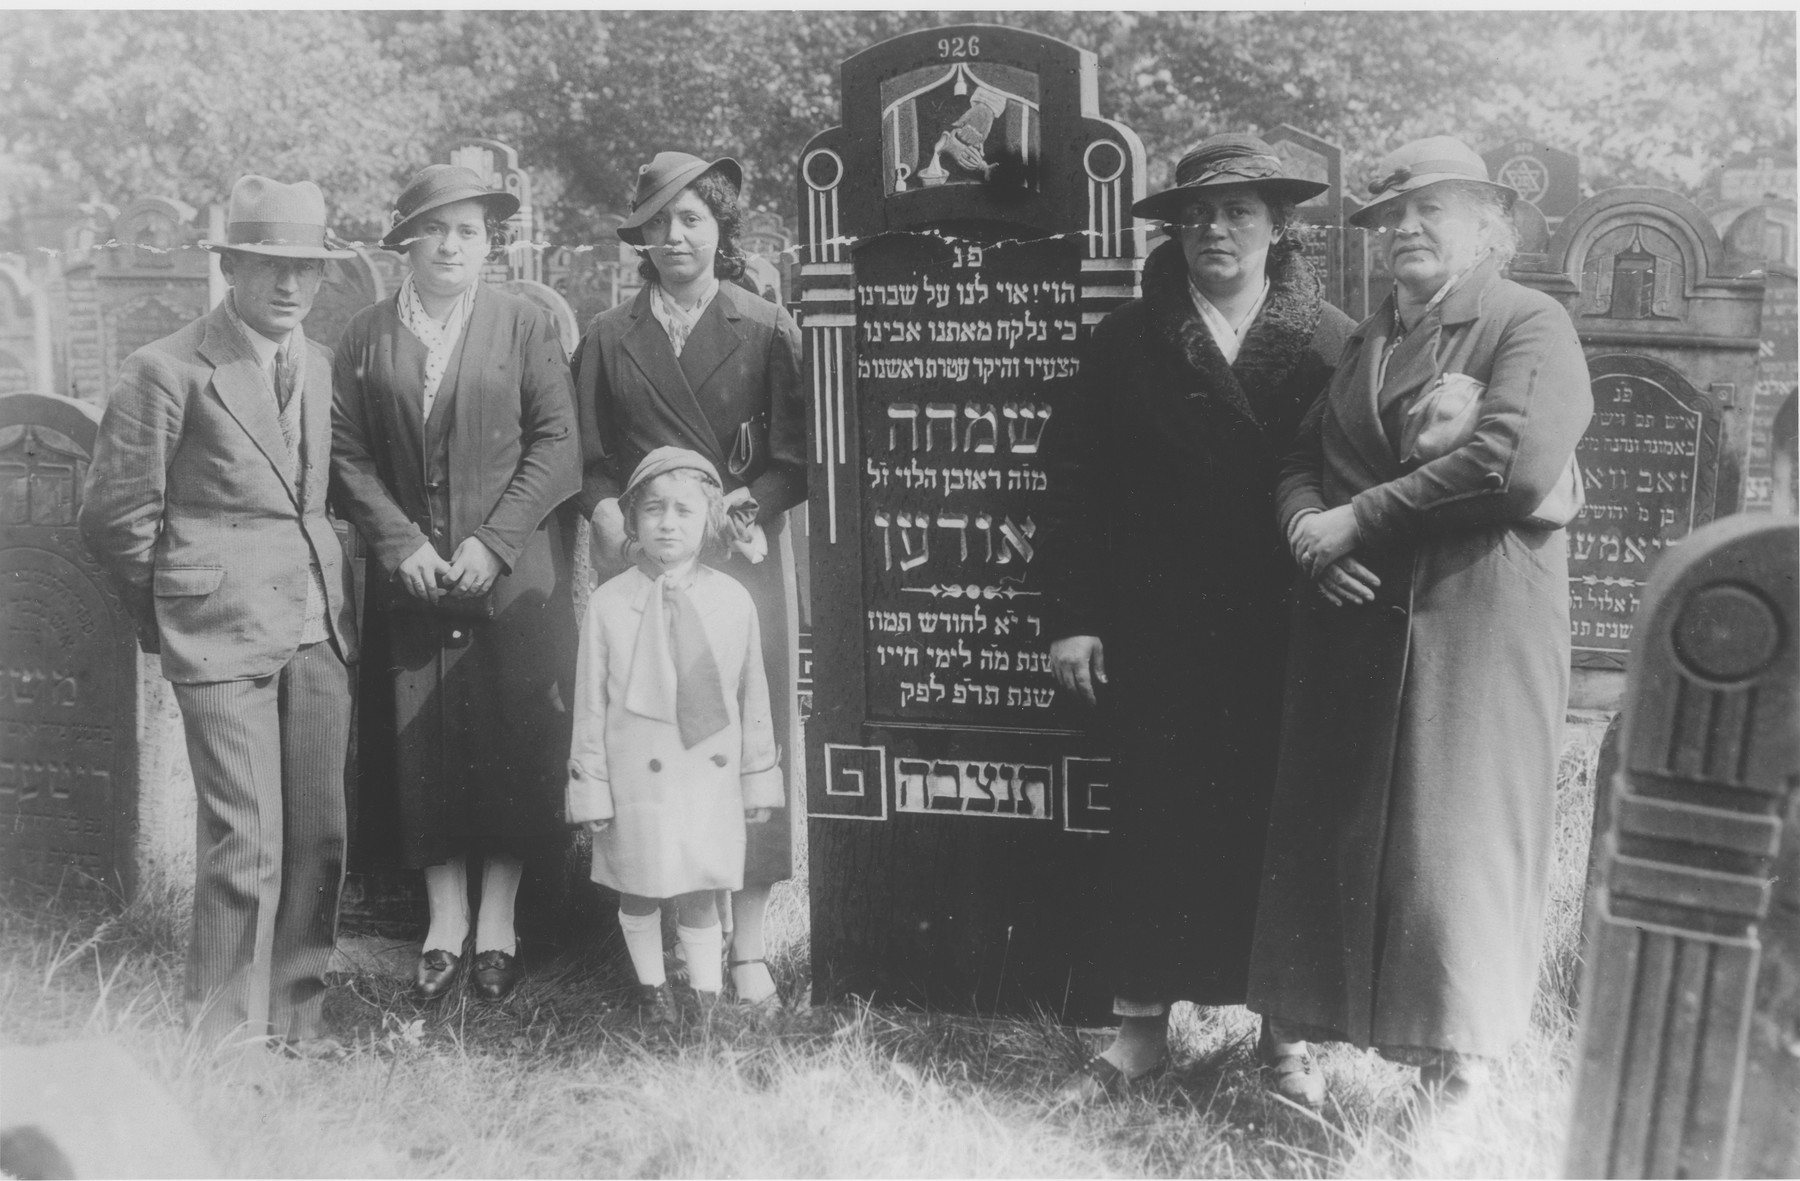 The Laudon family poses next to the tombstone of Symcha Laudon during the unveiling ceremony.  Standing from left to right are Wolf Laudon, Rywka Perla (last name unknown), Cyla Laudon, Maria Frajda's sister and Maria Frajda Laudon.